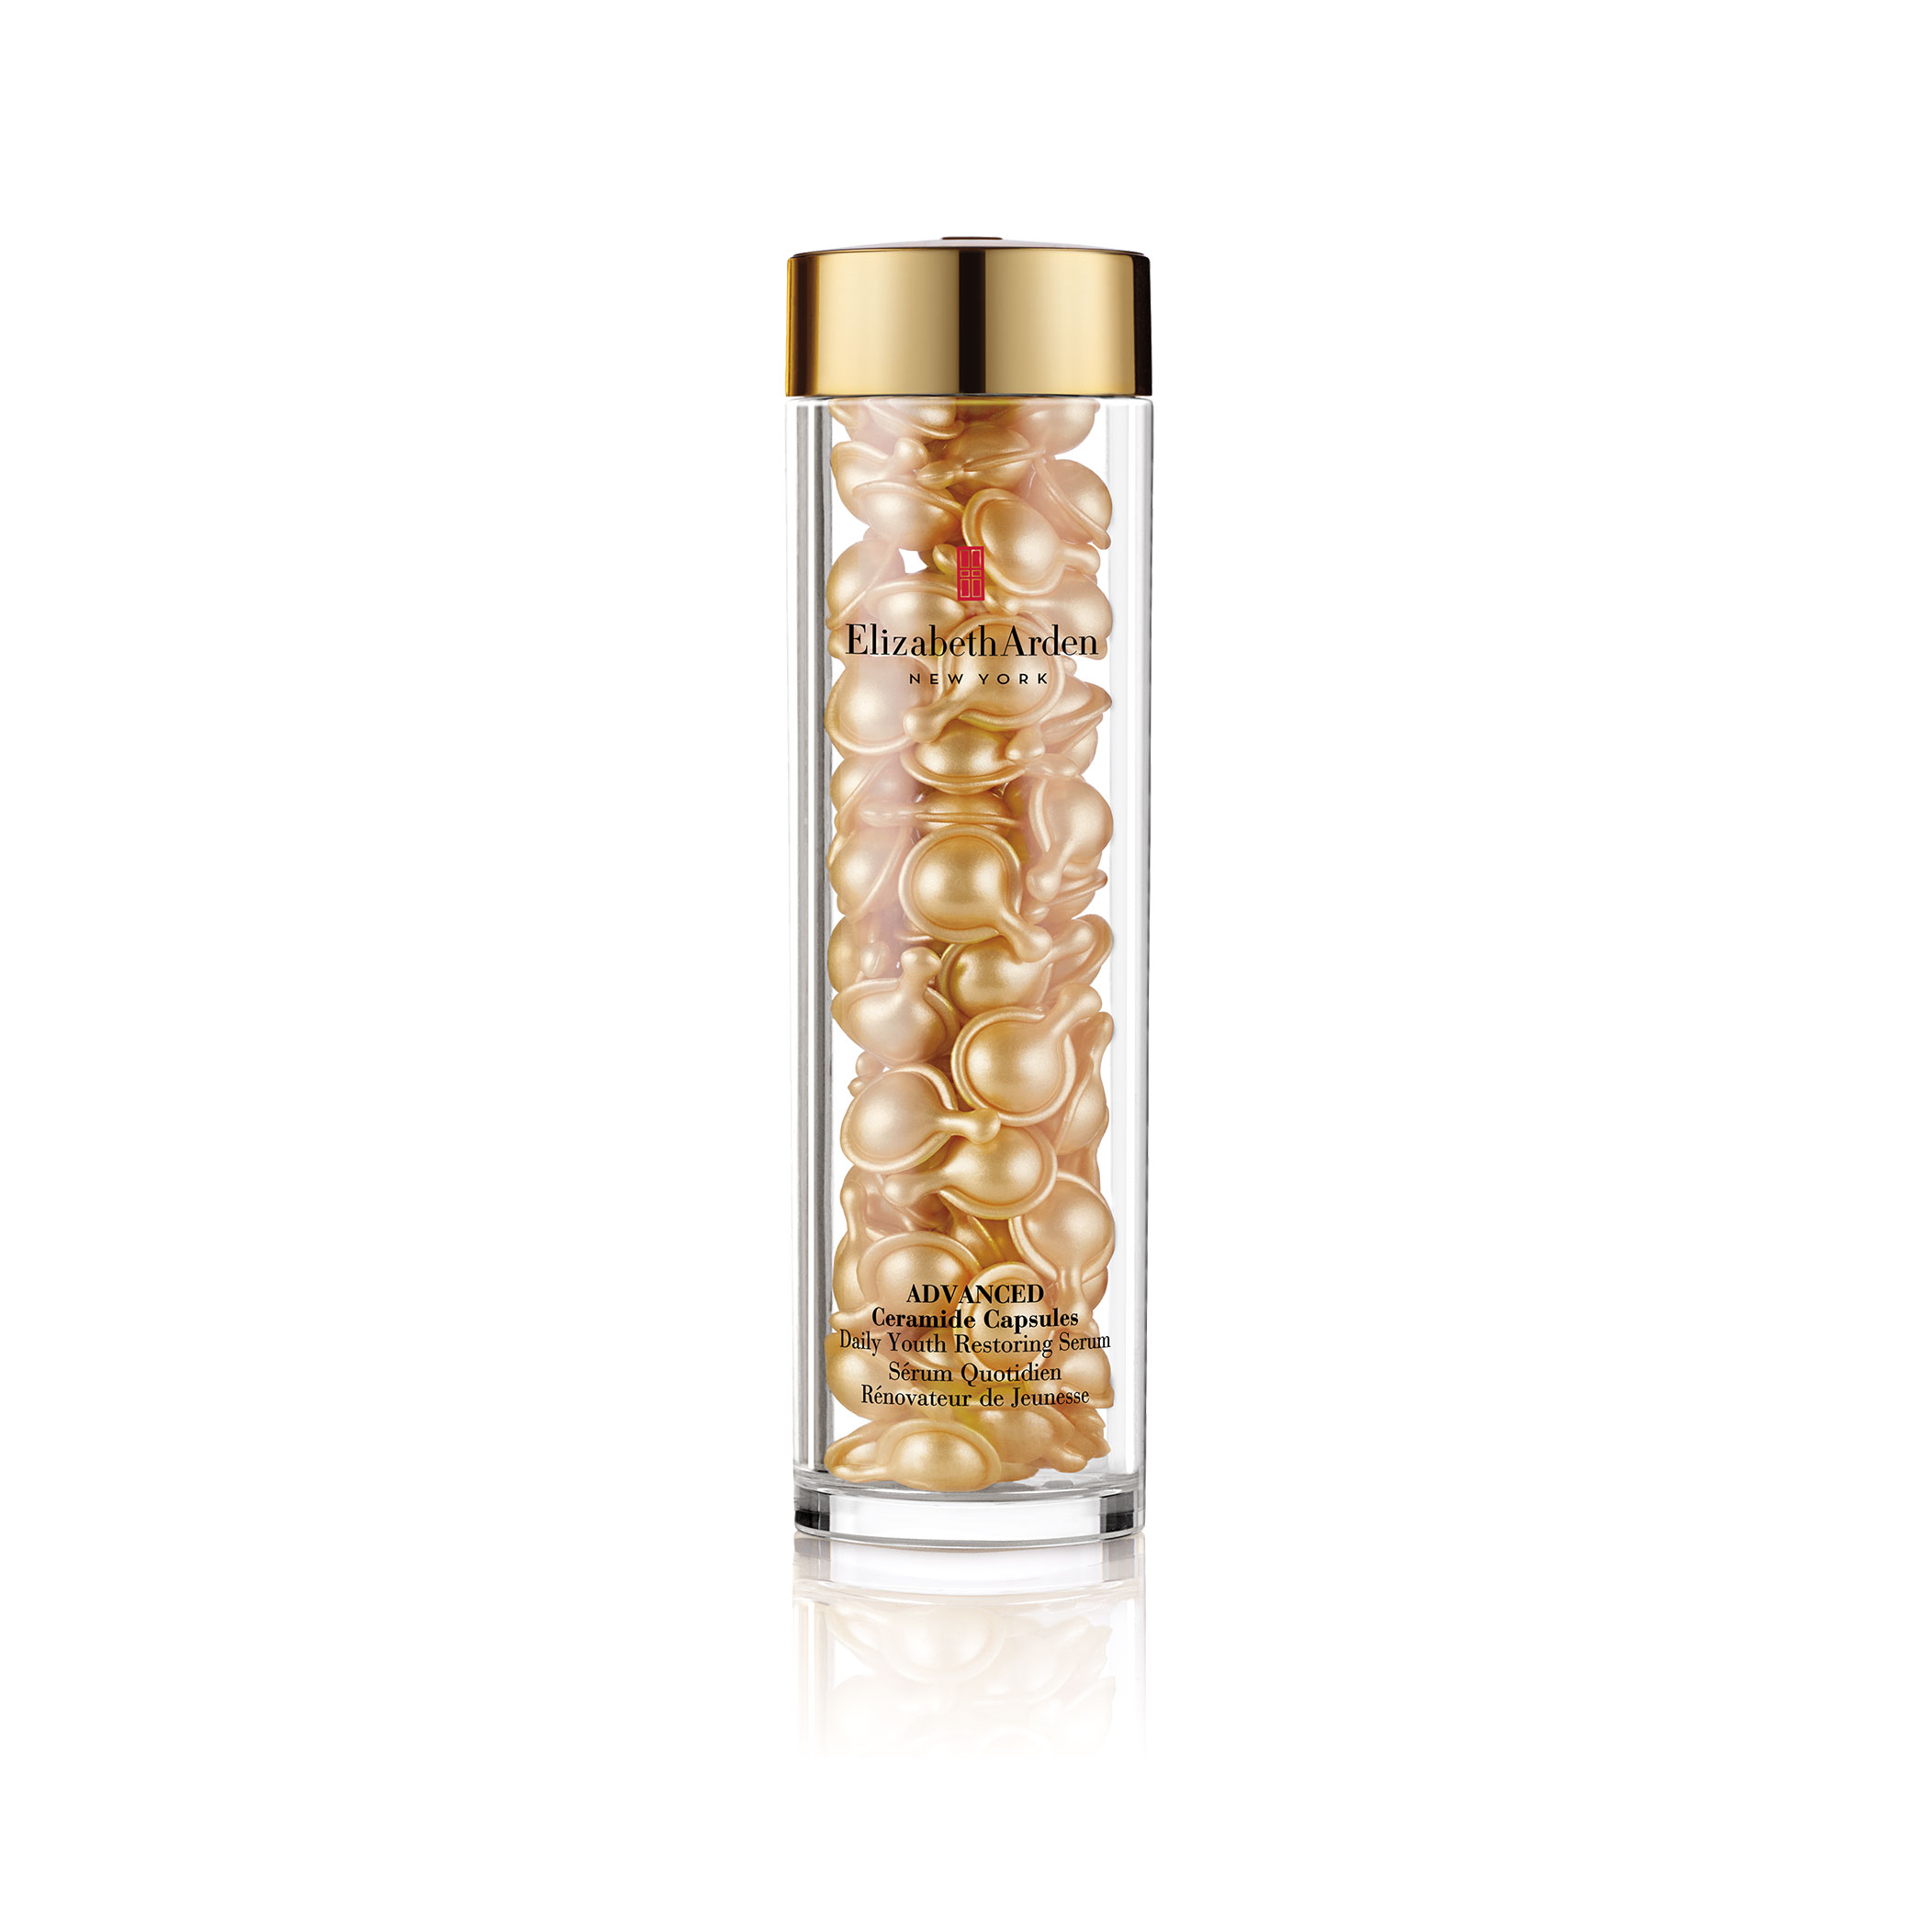 Advanced Ceramide Capsules Daily Youth Restoring Serum - 90 Piece, , large